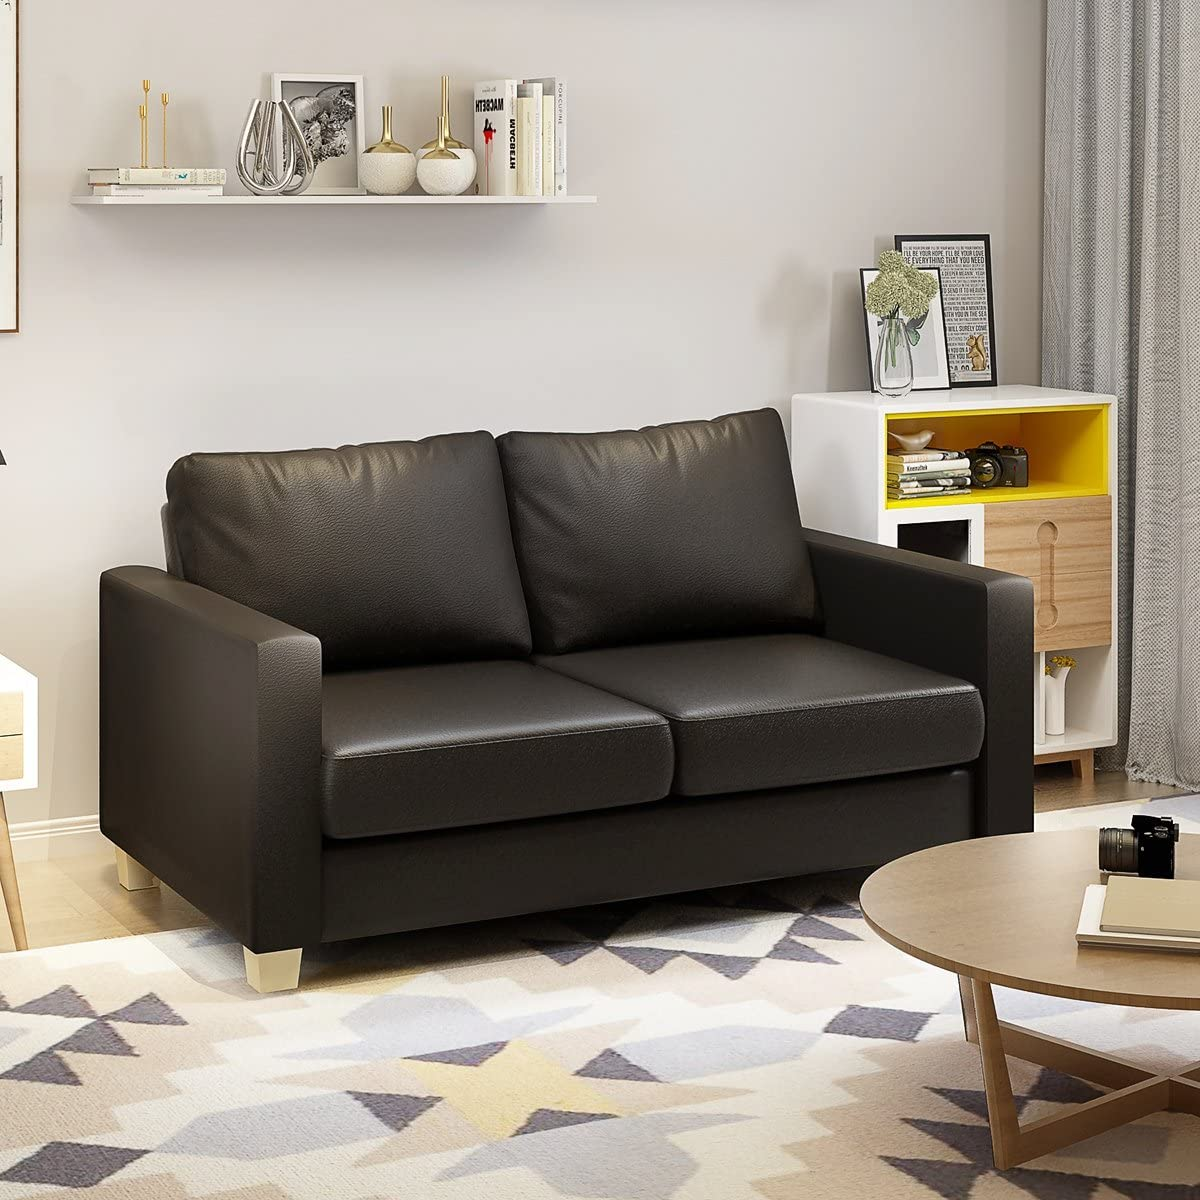 Modern Faux Leather 2 Seater Sofa Living Room Office